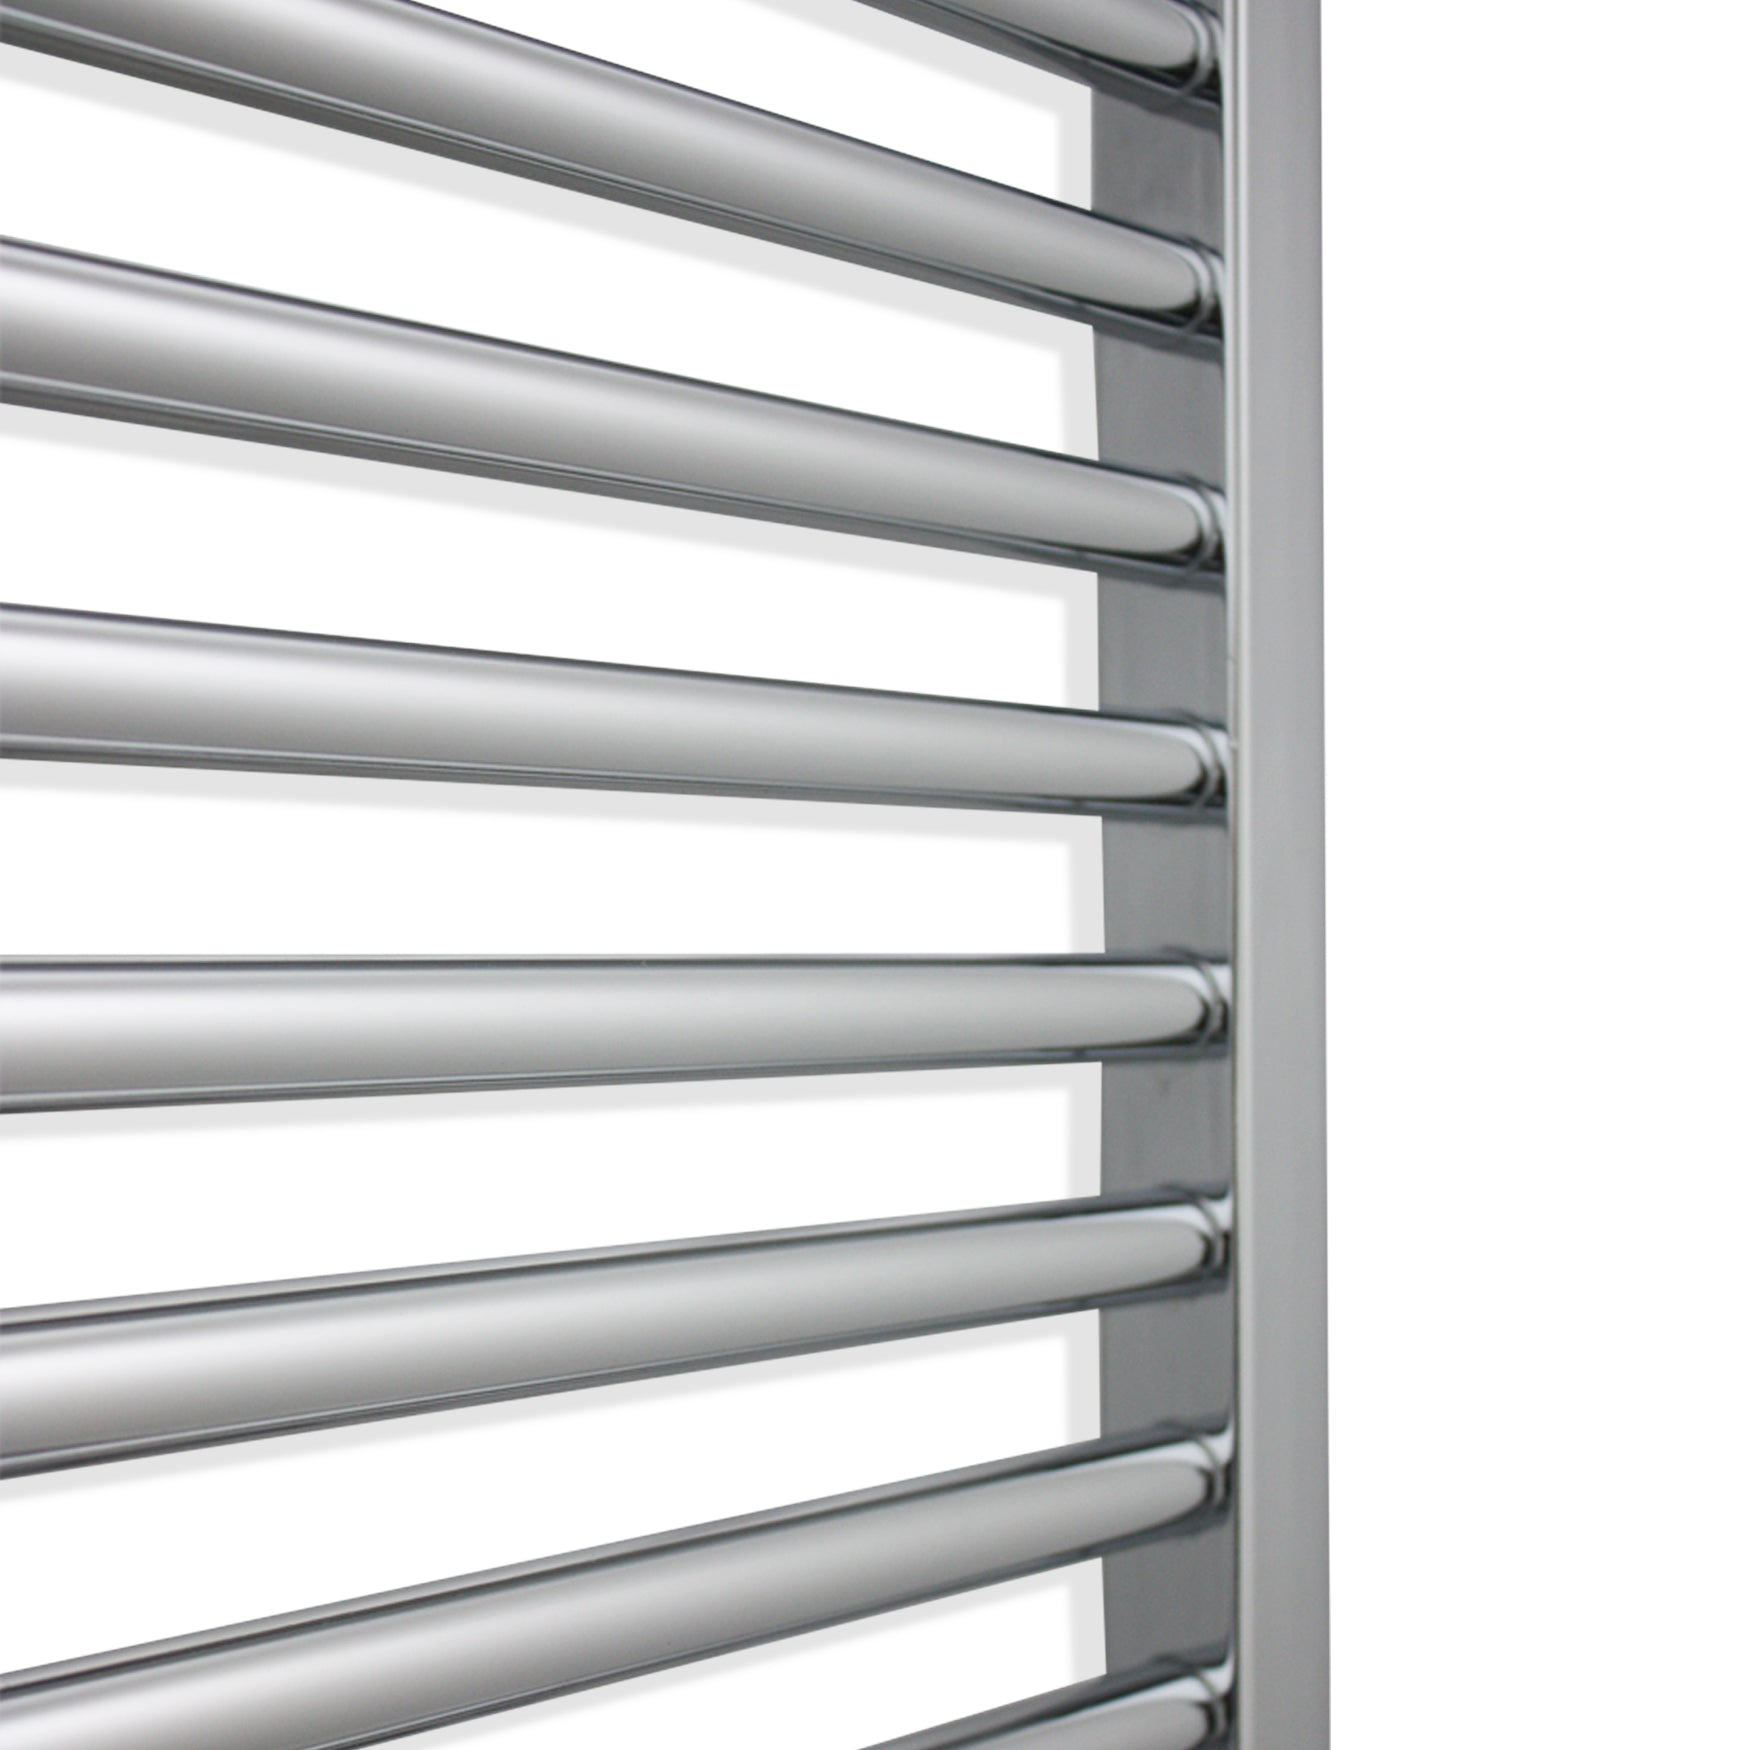 650mm Wide 1200mm High Flat Chrome Pre-Filled Electric Heated Towel Rail Radiator HTR